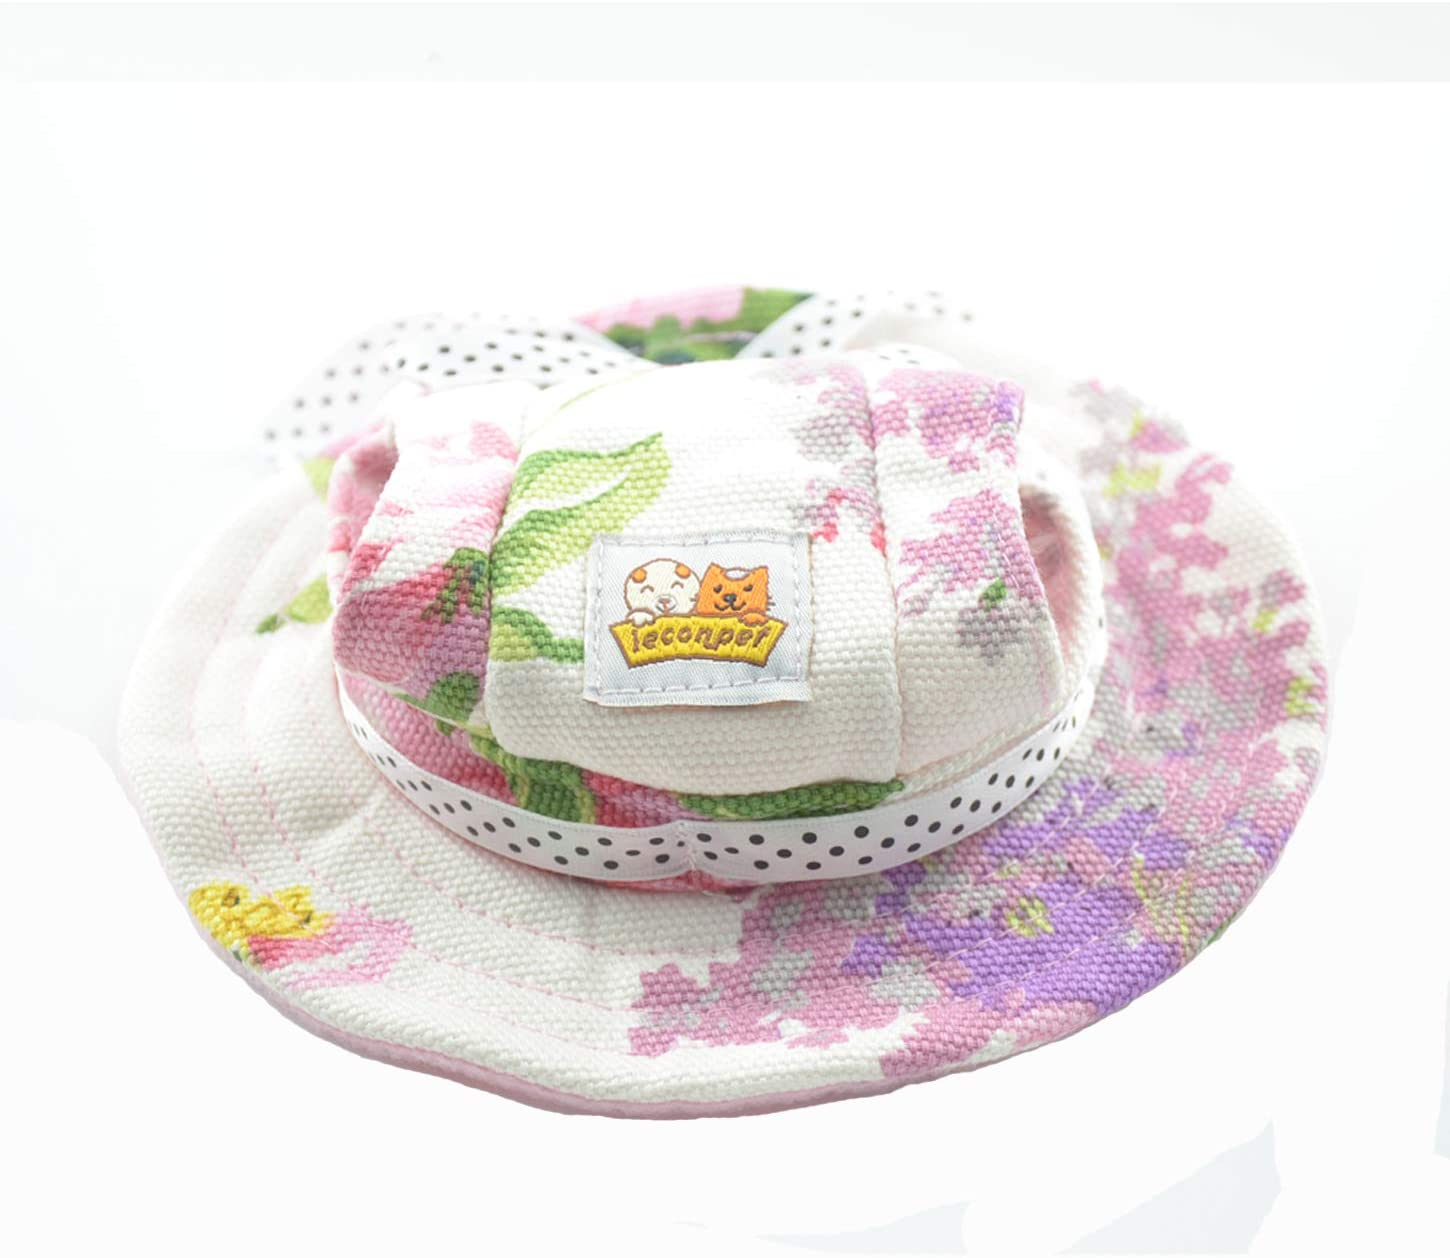 leconpet Princess Pet Hat Dog Caps Hats with Neck Strap Adjustable Comfortable Ear Holes for Small Medium Dogs in Outdoor Sun Protection Small, Colour Flower